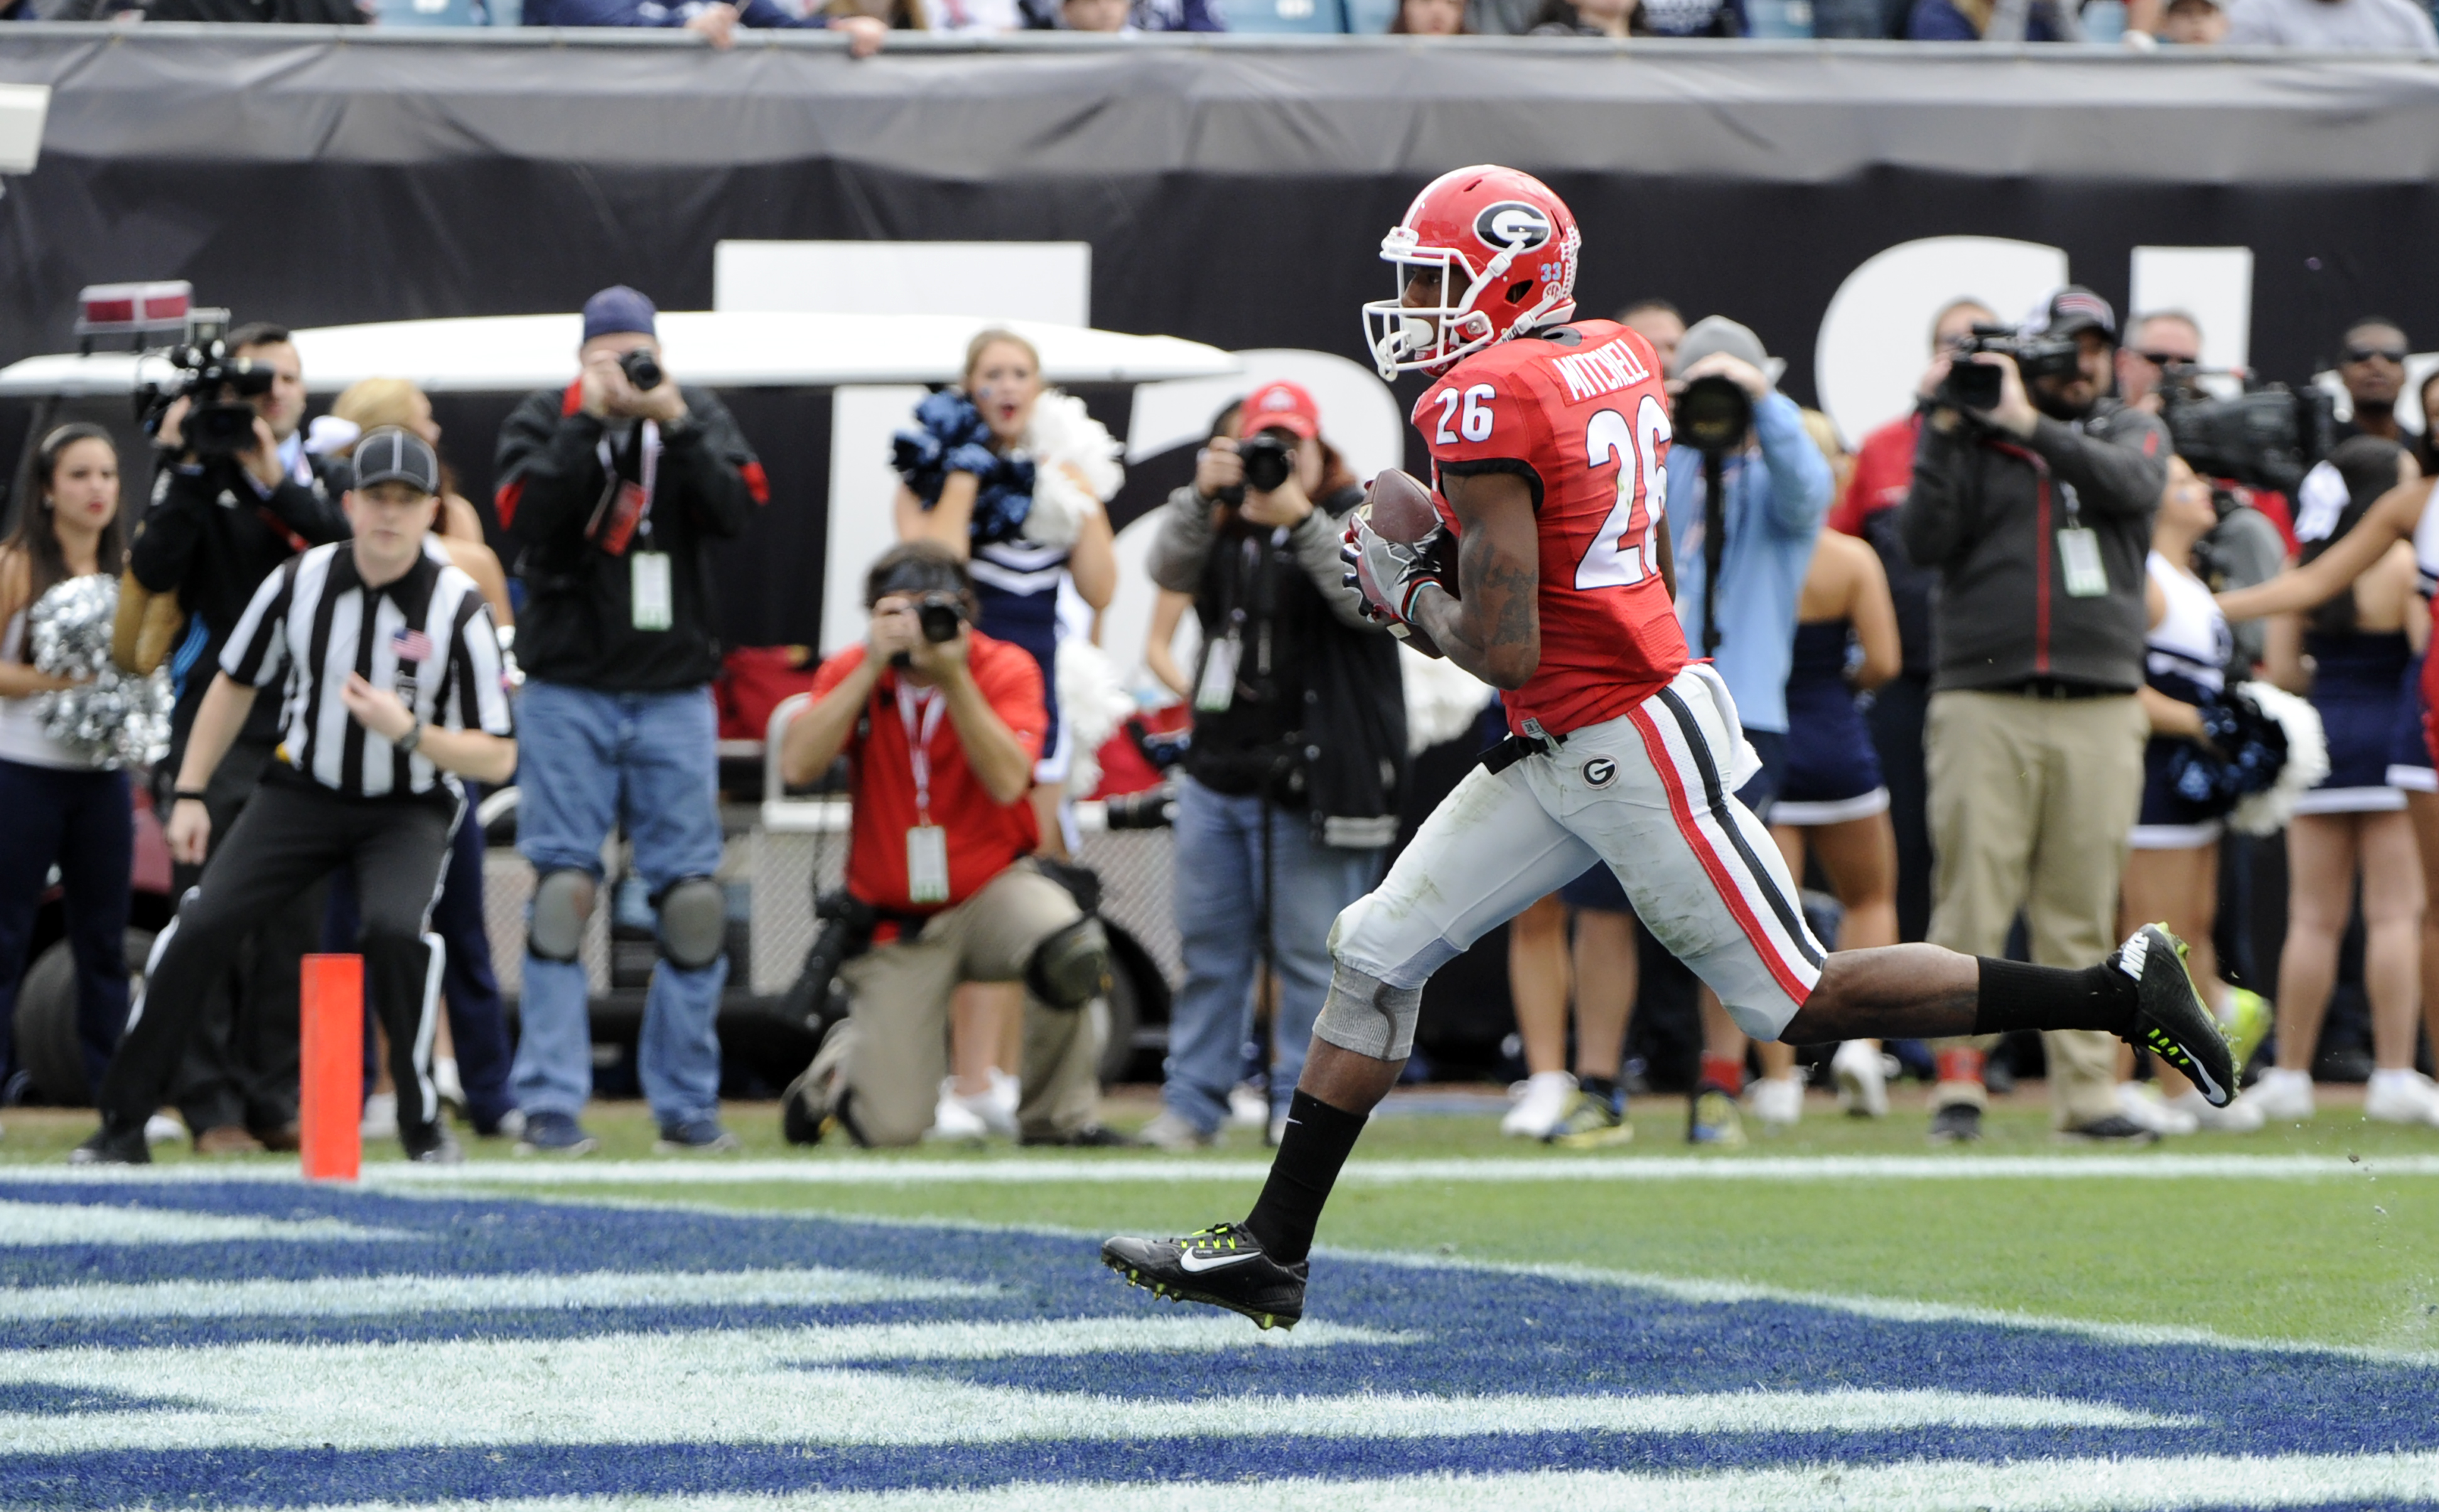 Georgia receiver Malcolm Mitchell (26) scores a touchdown during the Bulldogs' game against the Penn State Nittany Lions in the TaxSlayer Bowl on Saturday, Jan. 2, 2016 at EverBank Field in Jacksonville, Florida (Photo by John Kelley)